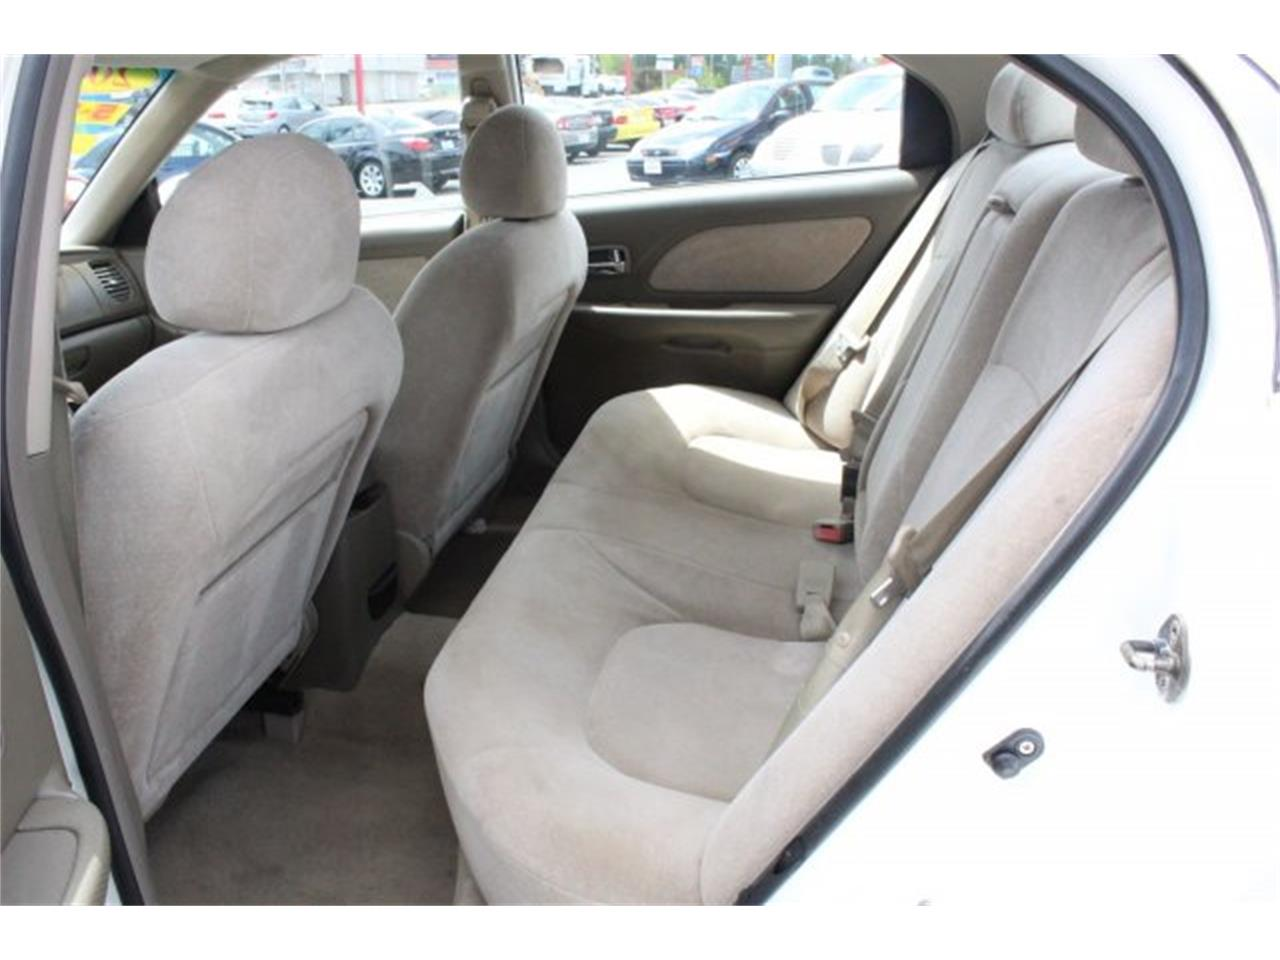 Large Picture of 2005 Hyundai Sonata - $4,995.00 Offered by Carson Cars - JJGU